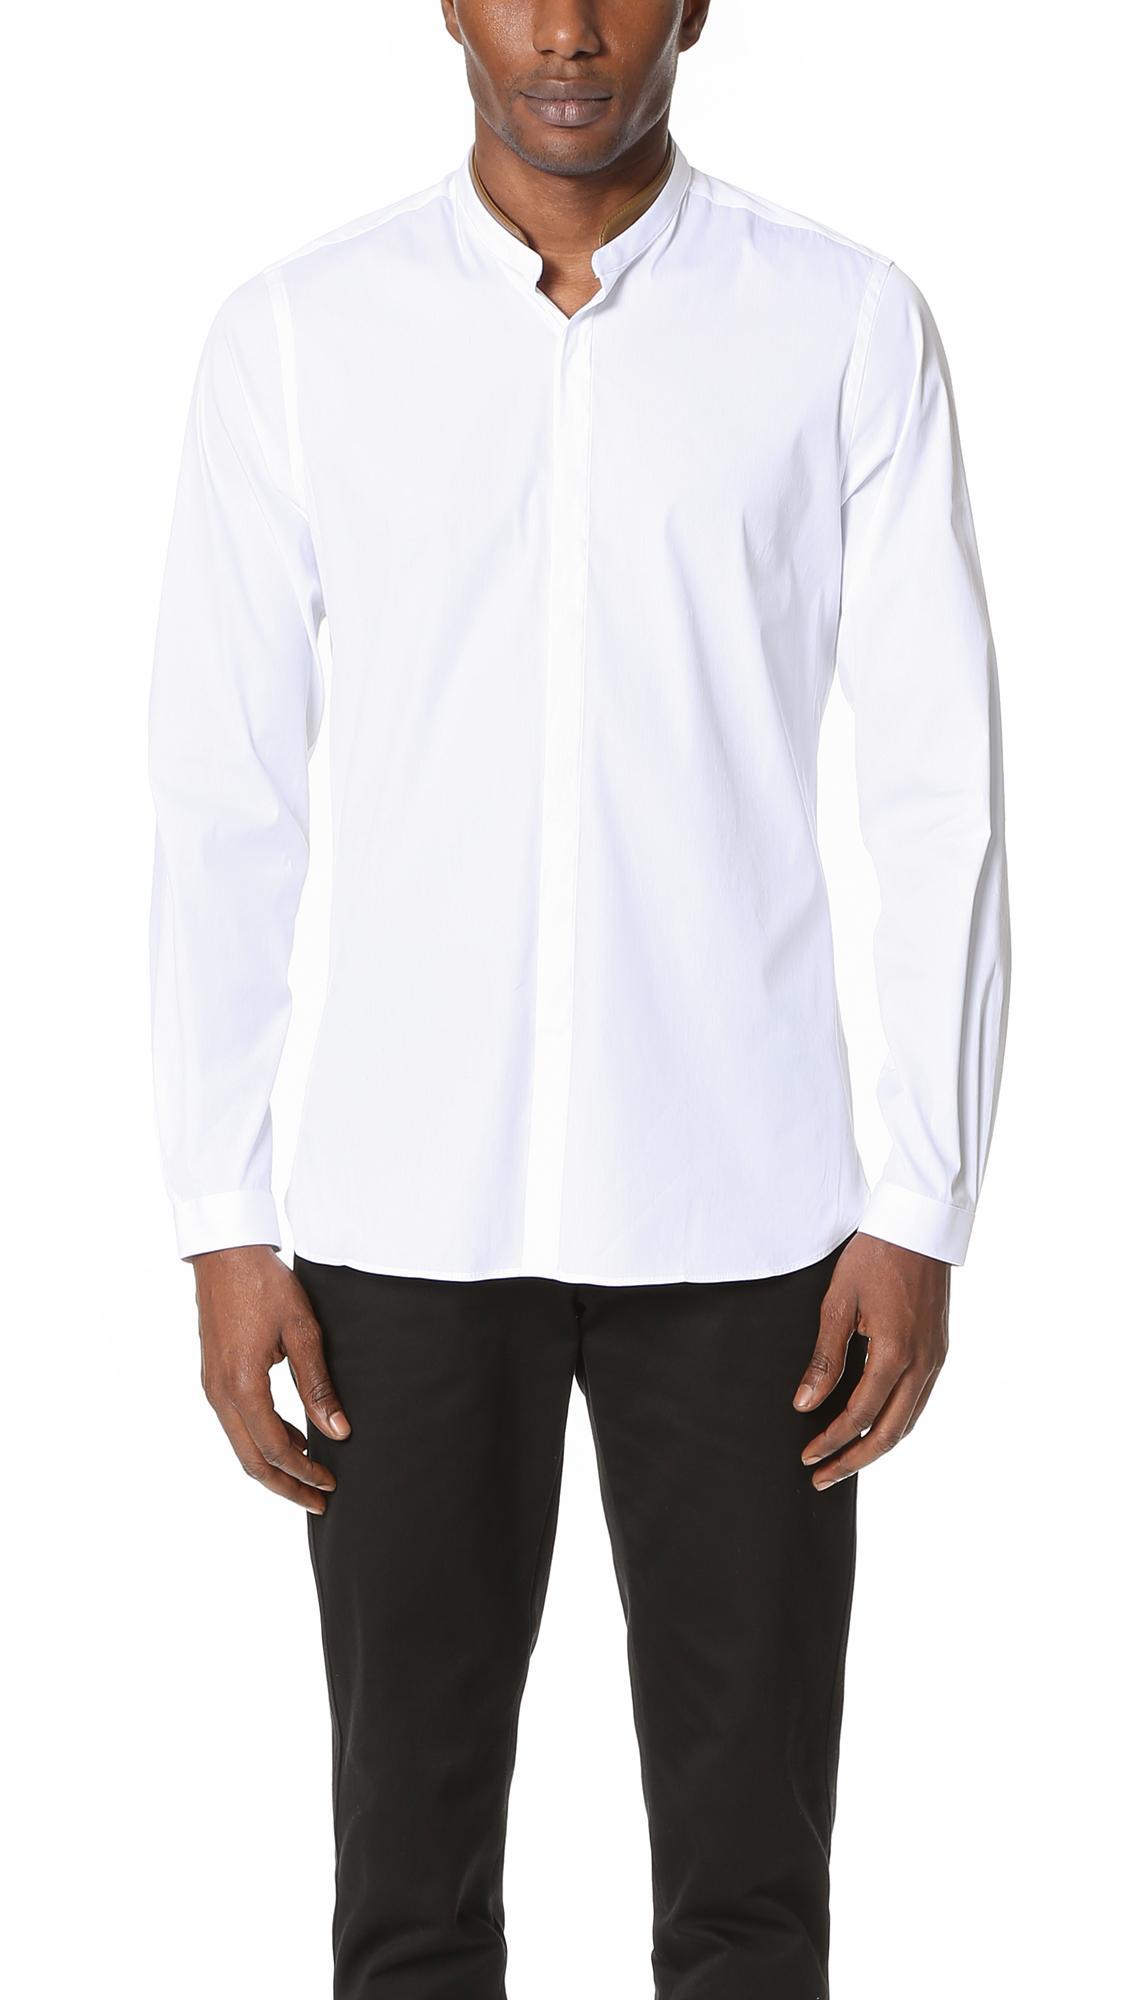 The Kooples Band Collar Dress Shirt In White For Men Lyst